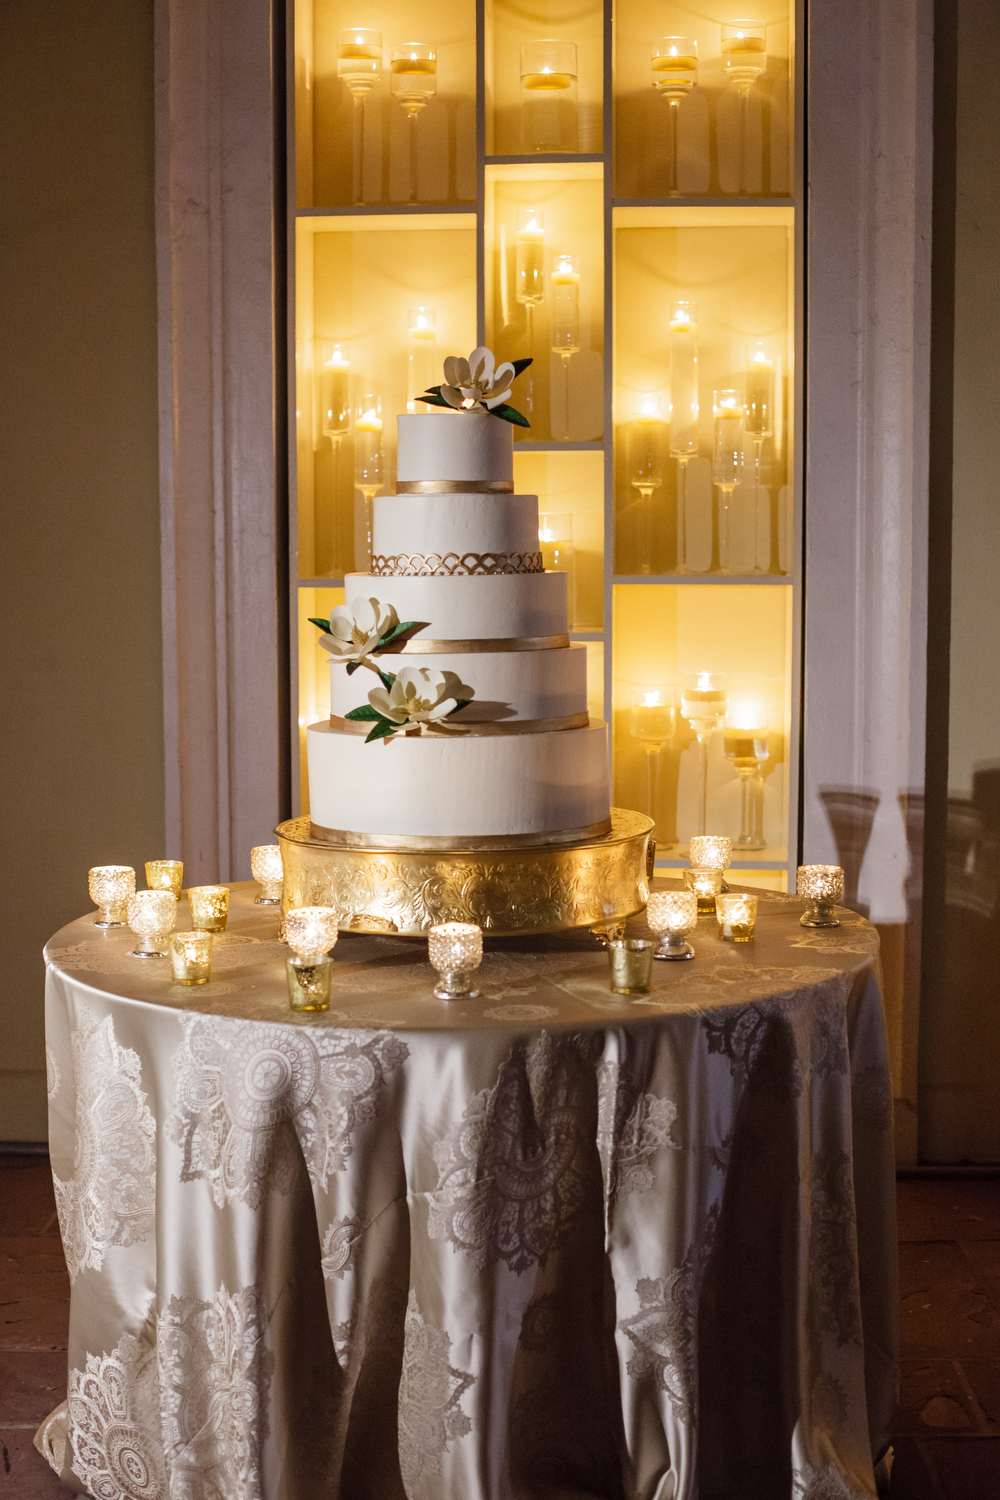 white and gold wedding cake in front of wall of candle light with magnolia flower details